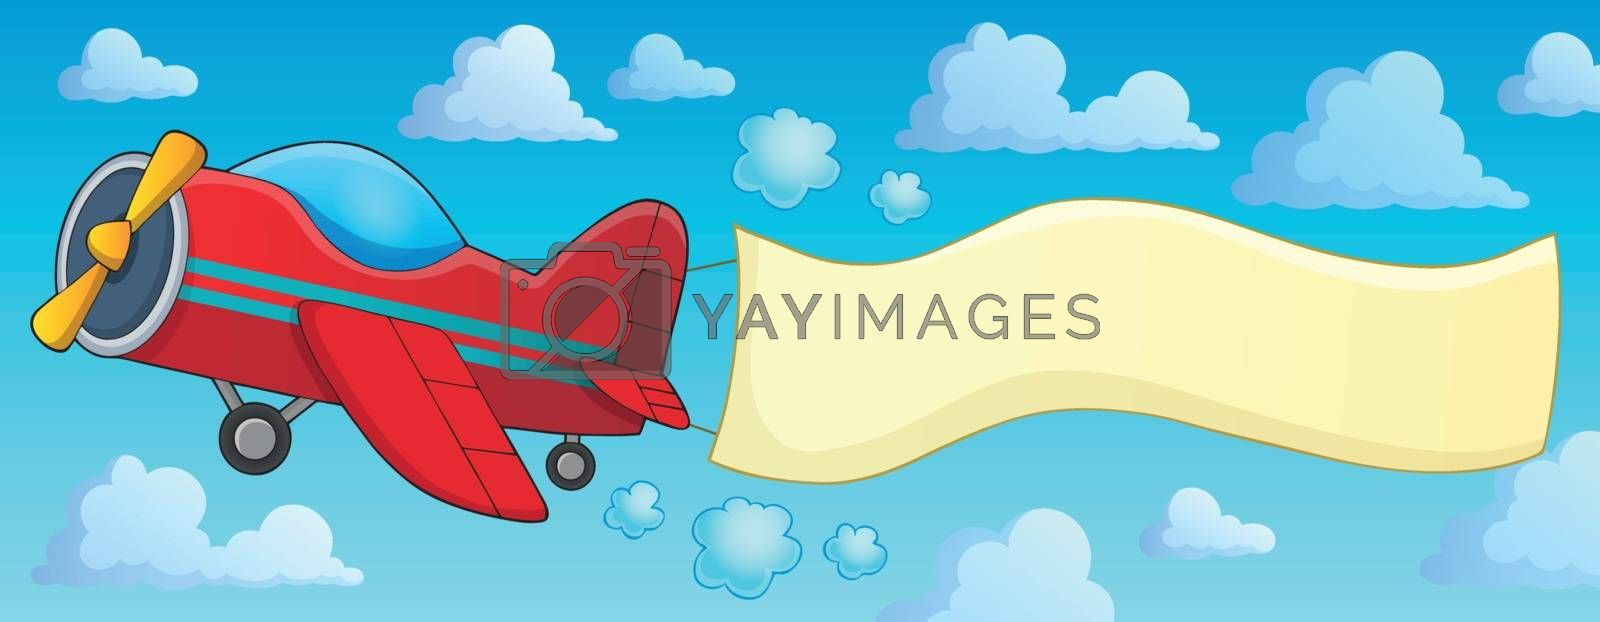 Retro airplane with banner theme 3 - eps10 vector illustration.